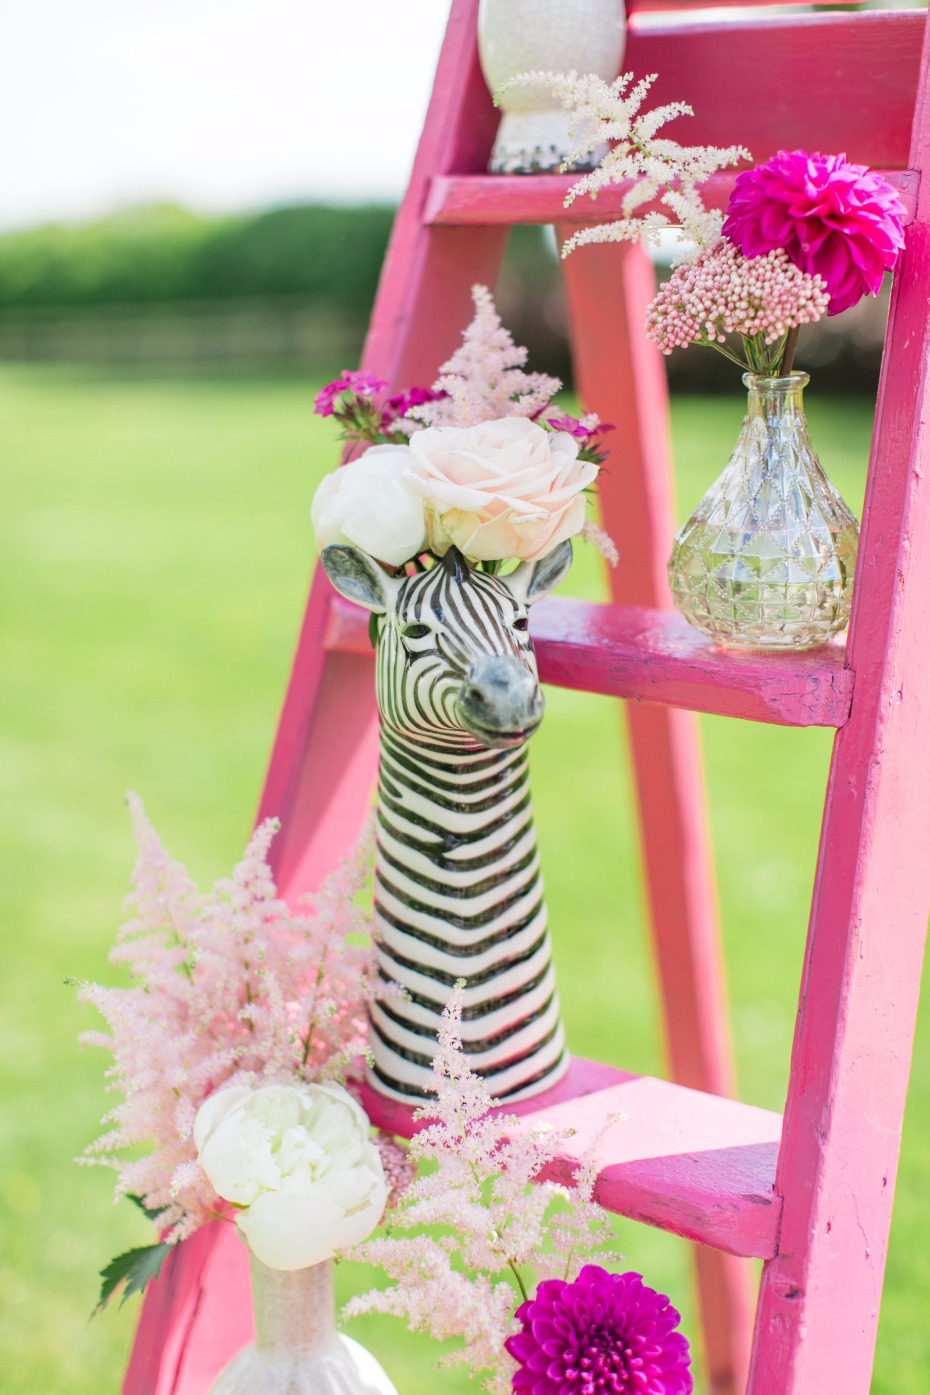 Zebra vase for a circus inspired wedding